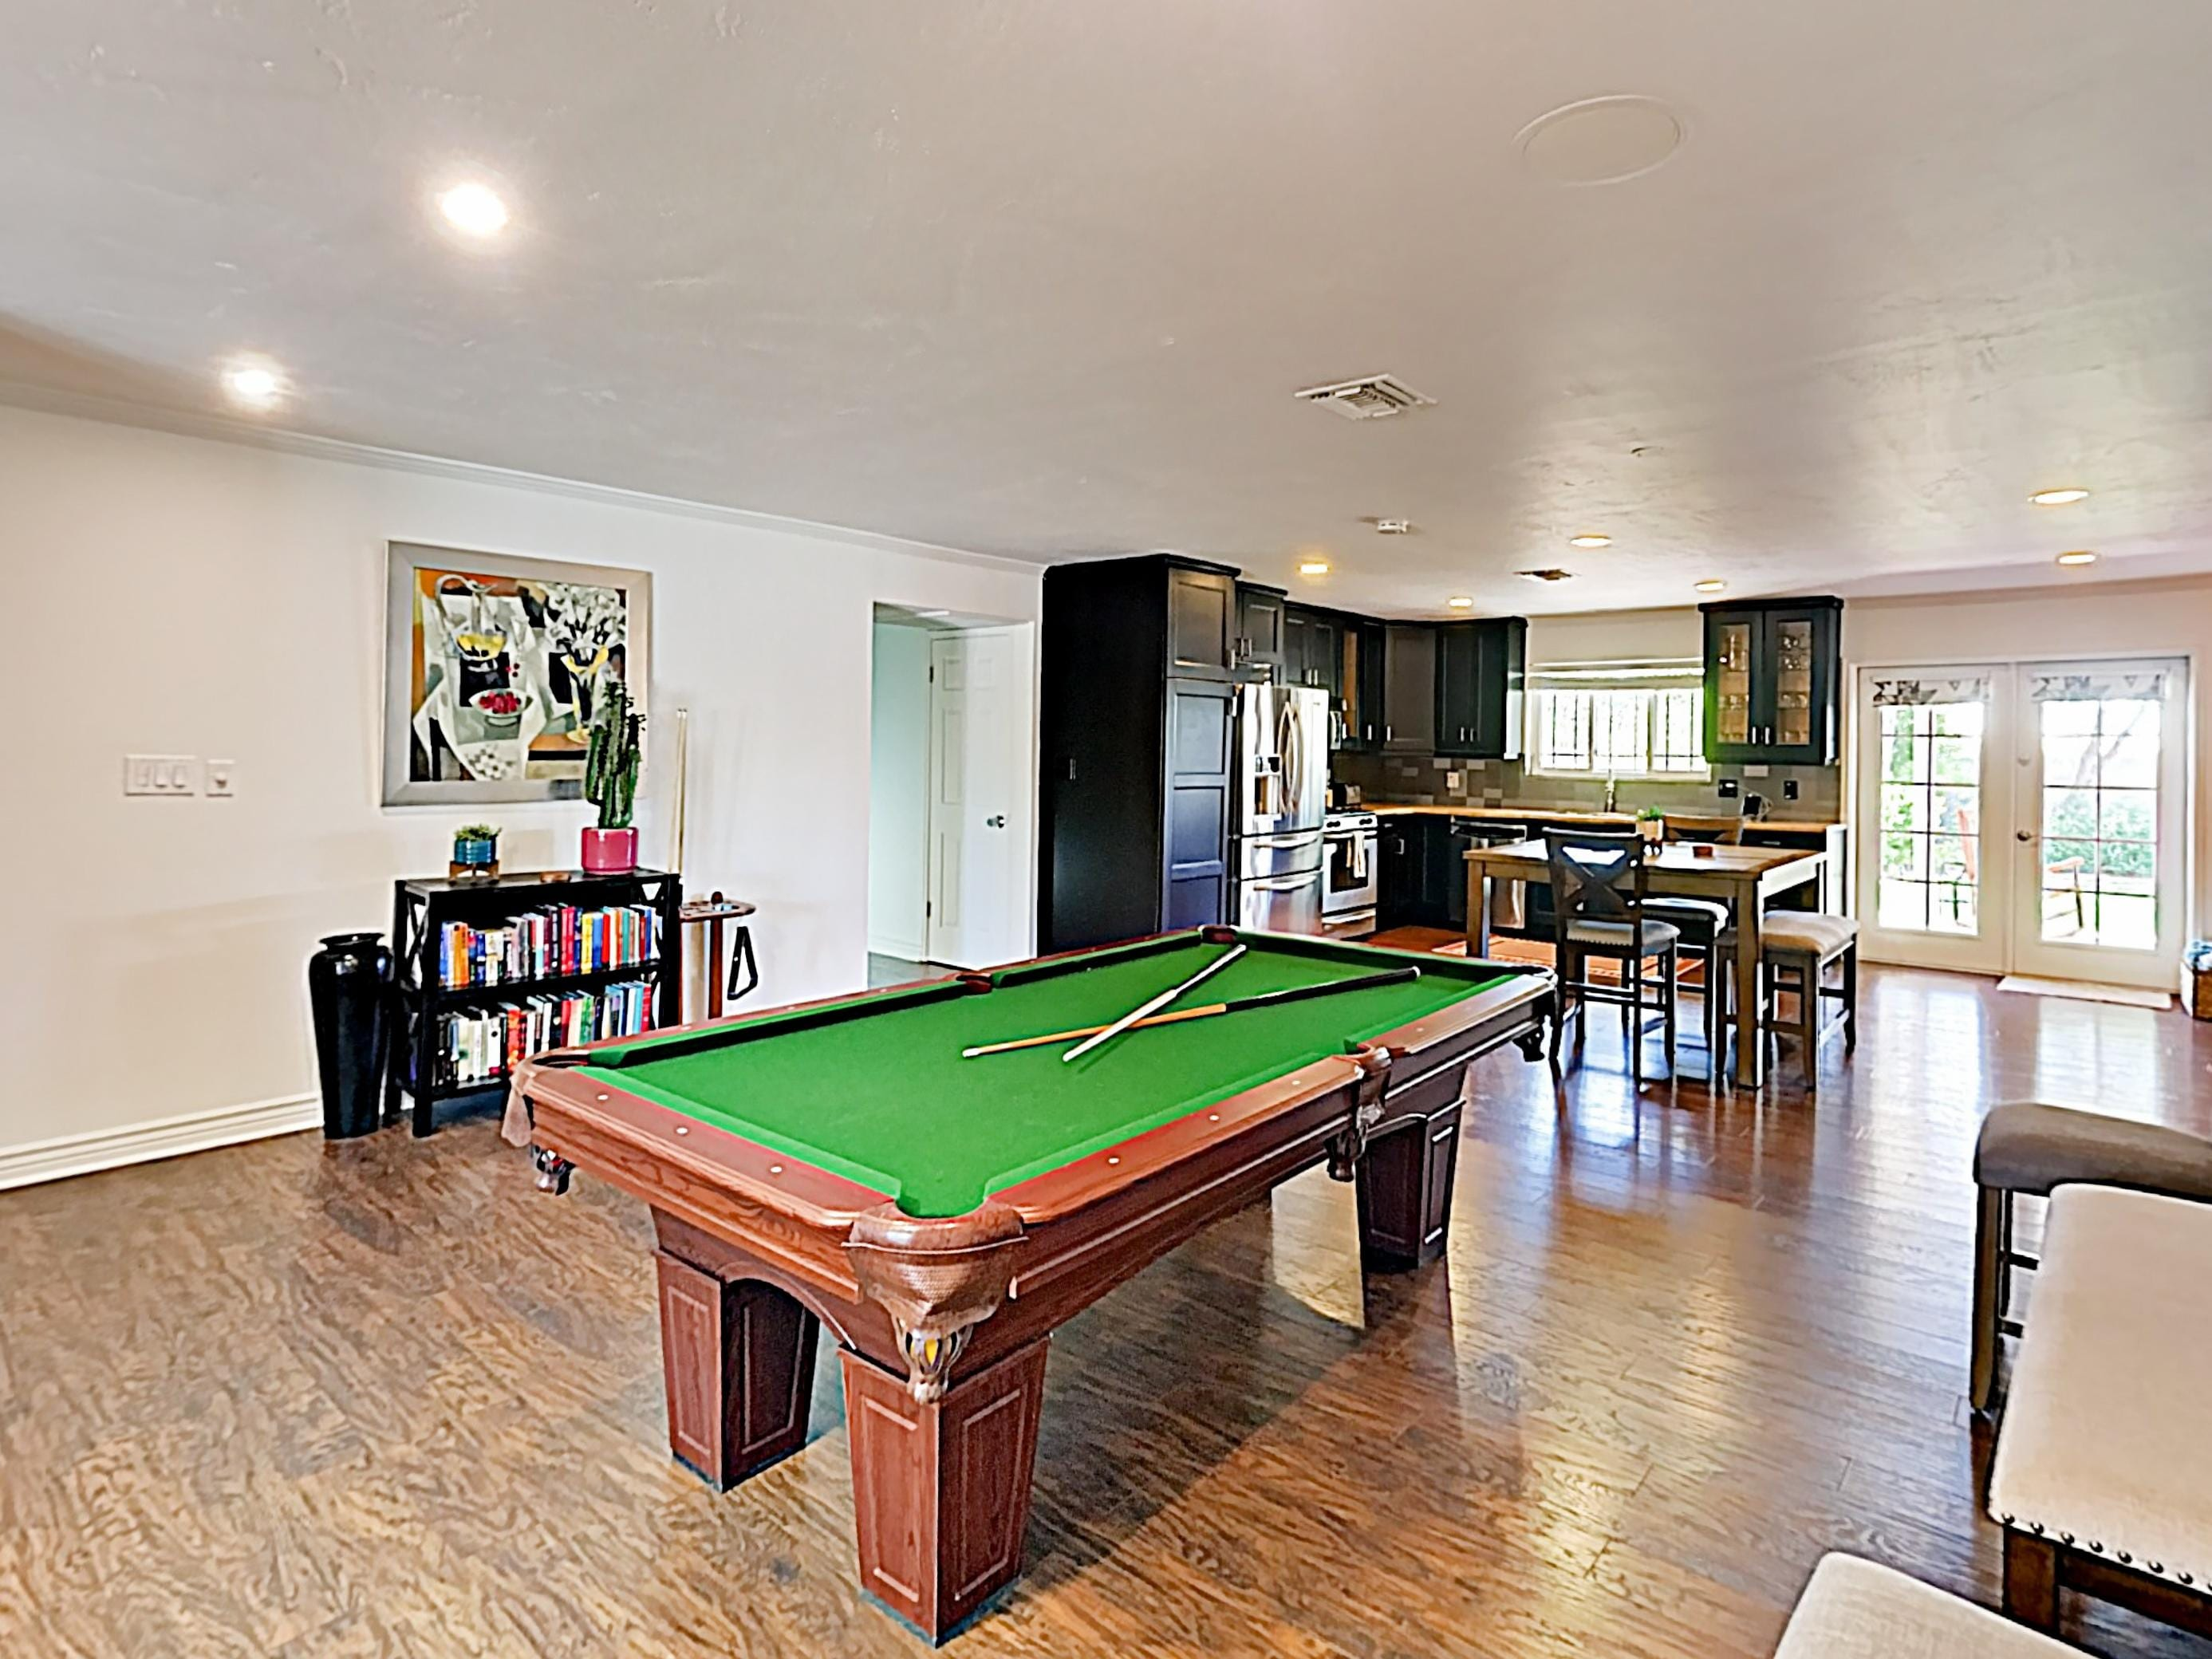 Play a round of billiards at the pool table in the game room.